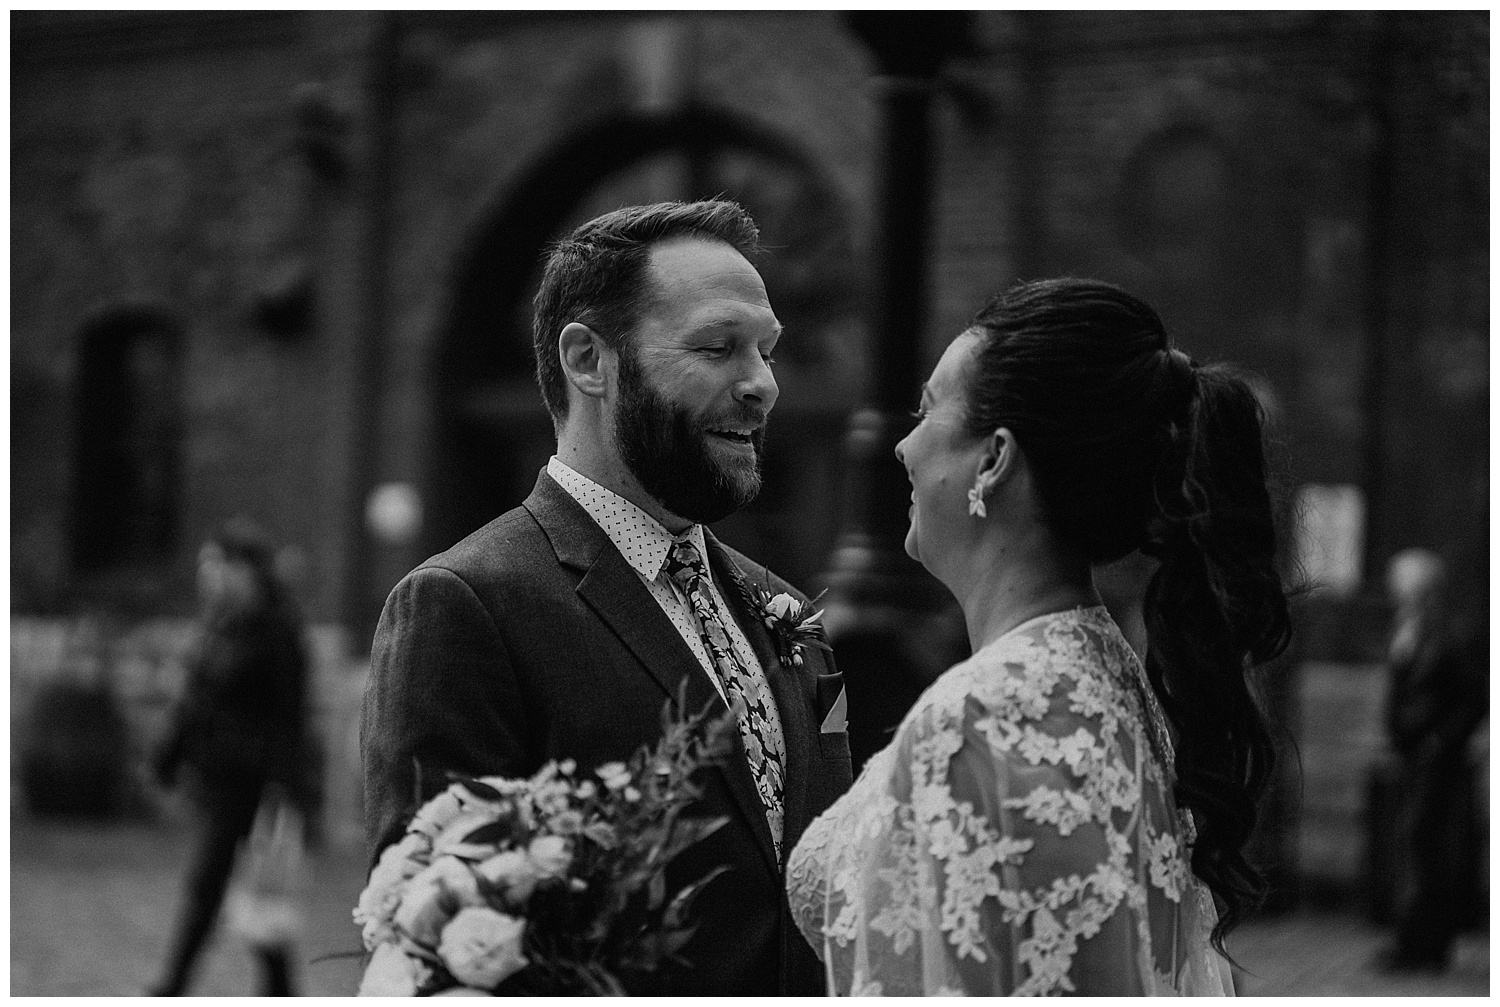 Katie Marie Photography | Archeo Wedding Arta Gallery Wedding | Distillery District Wedding | Toronto Wedding Photographer | Hamilton Toronto Ontario Wedding Photographer |_0011.jpg